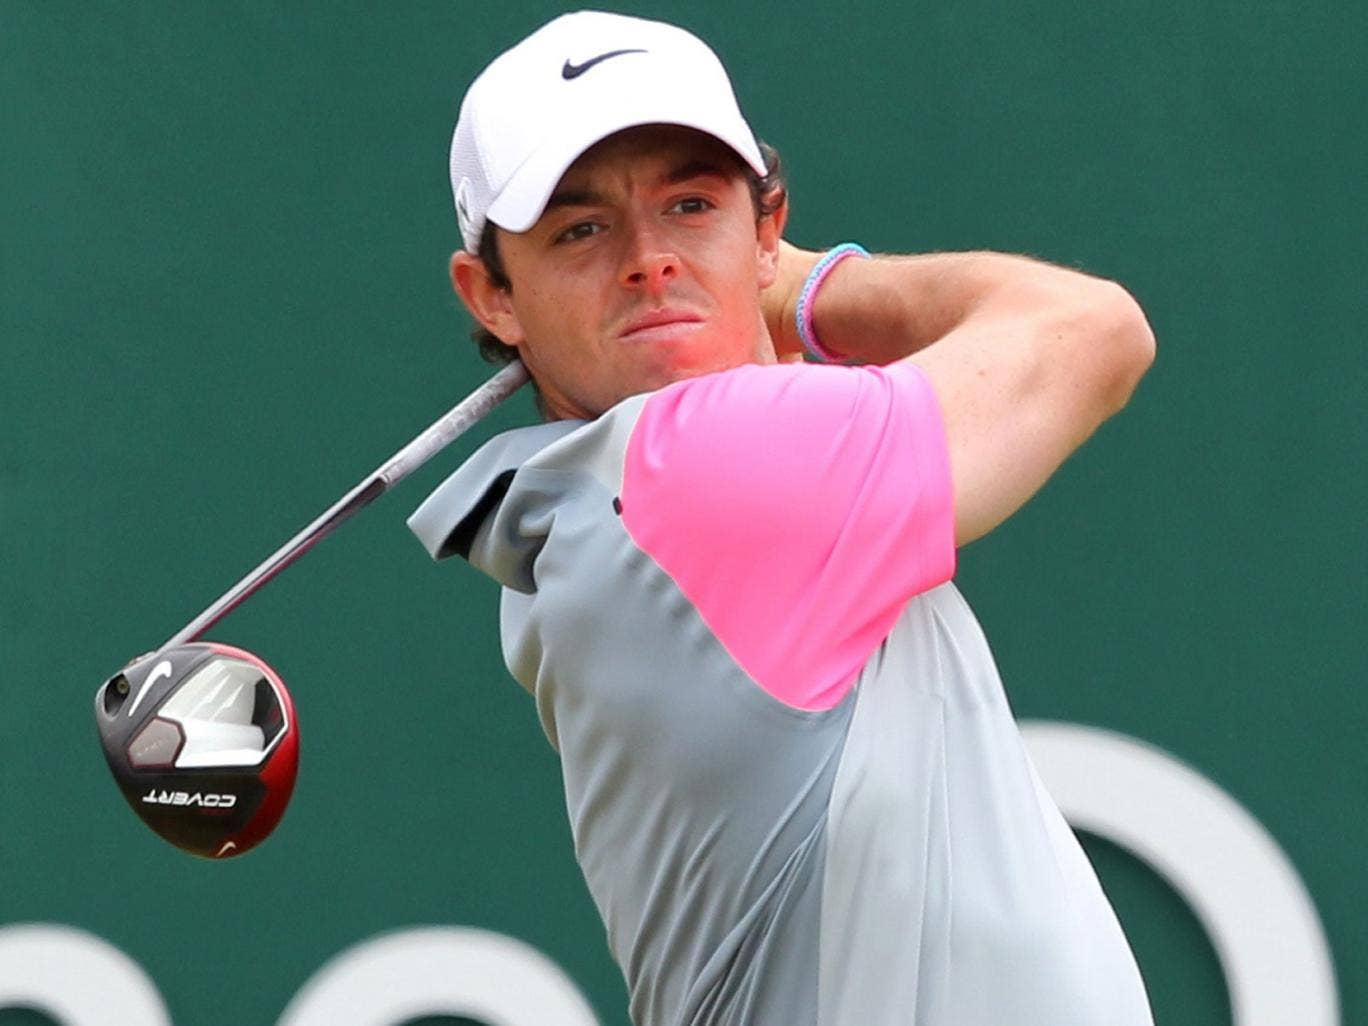 Rory McIlroy watches his shot from the 1st tee today